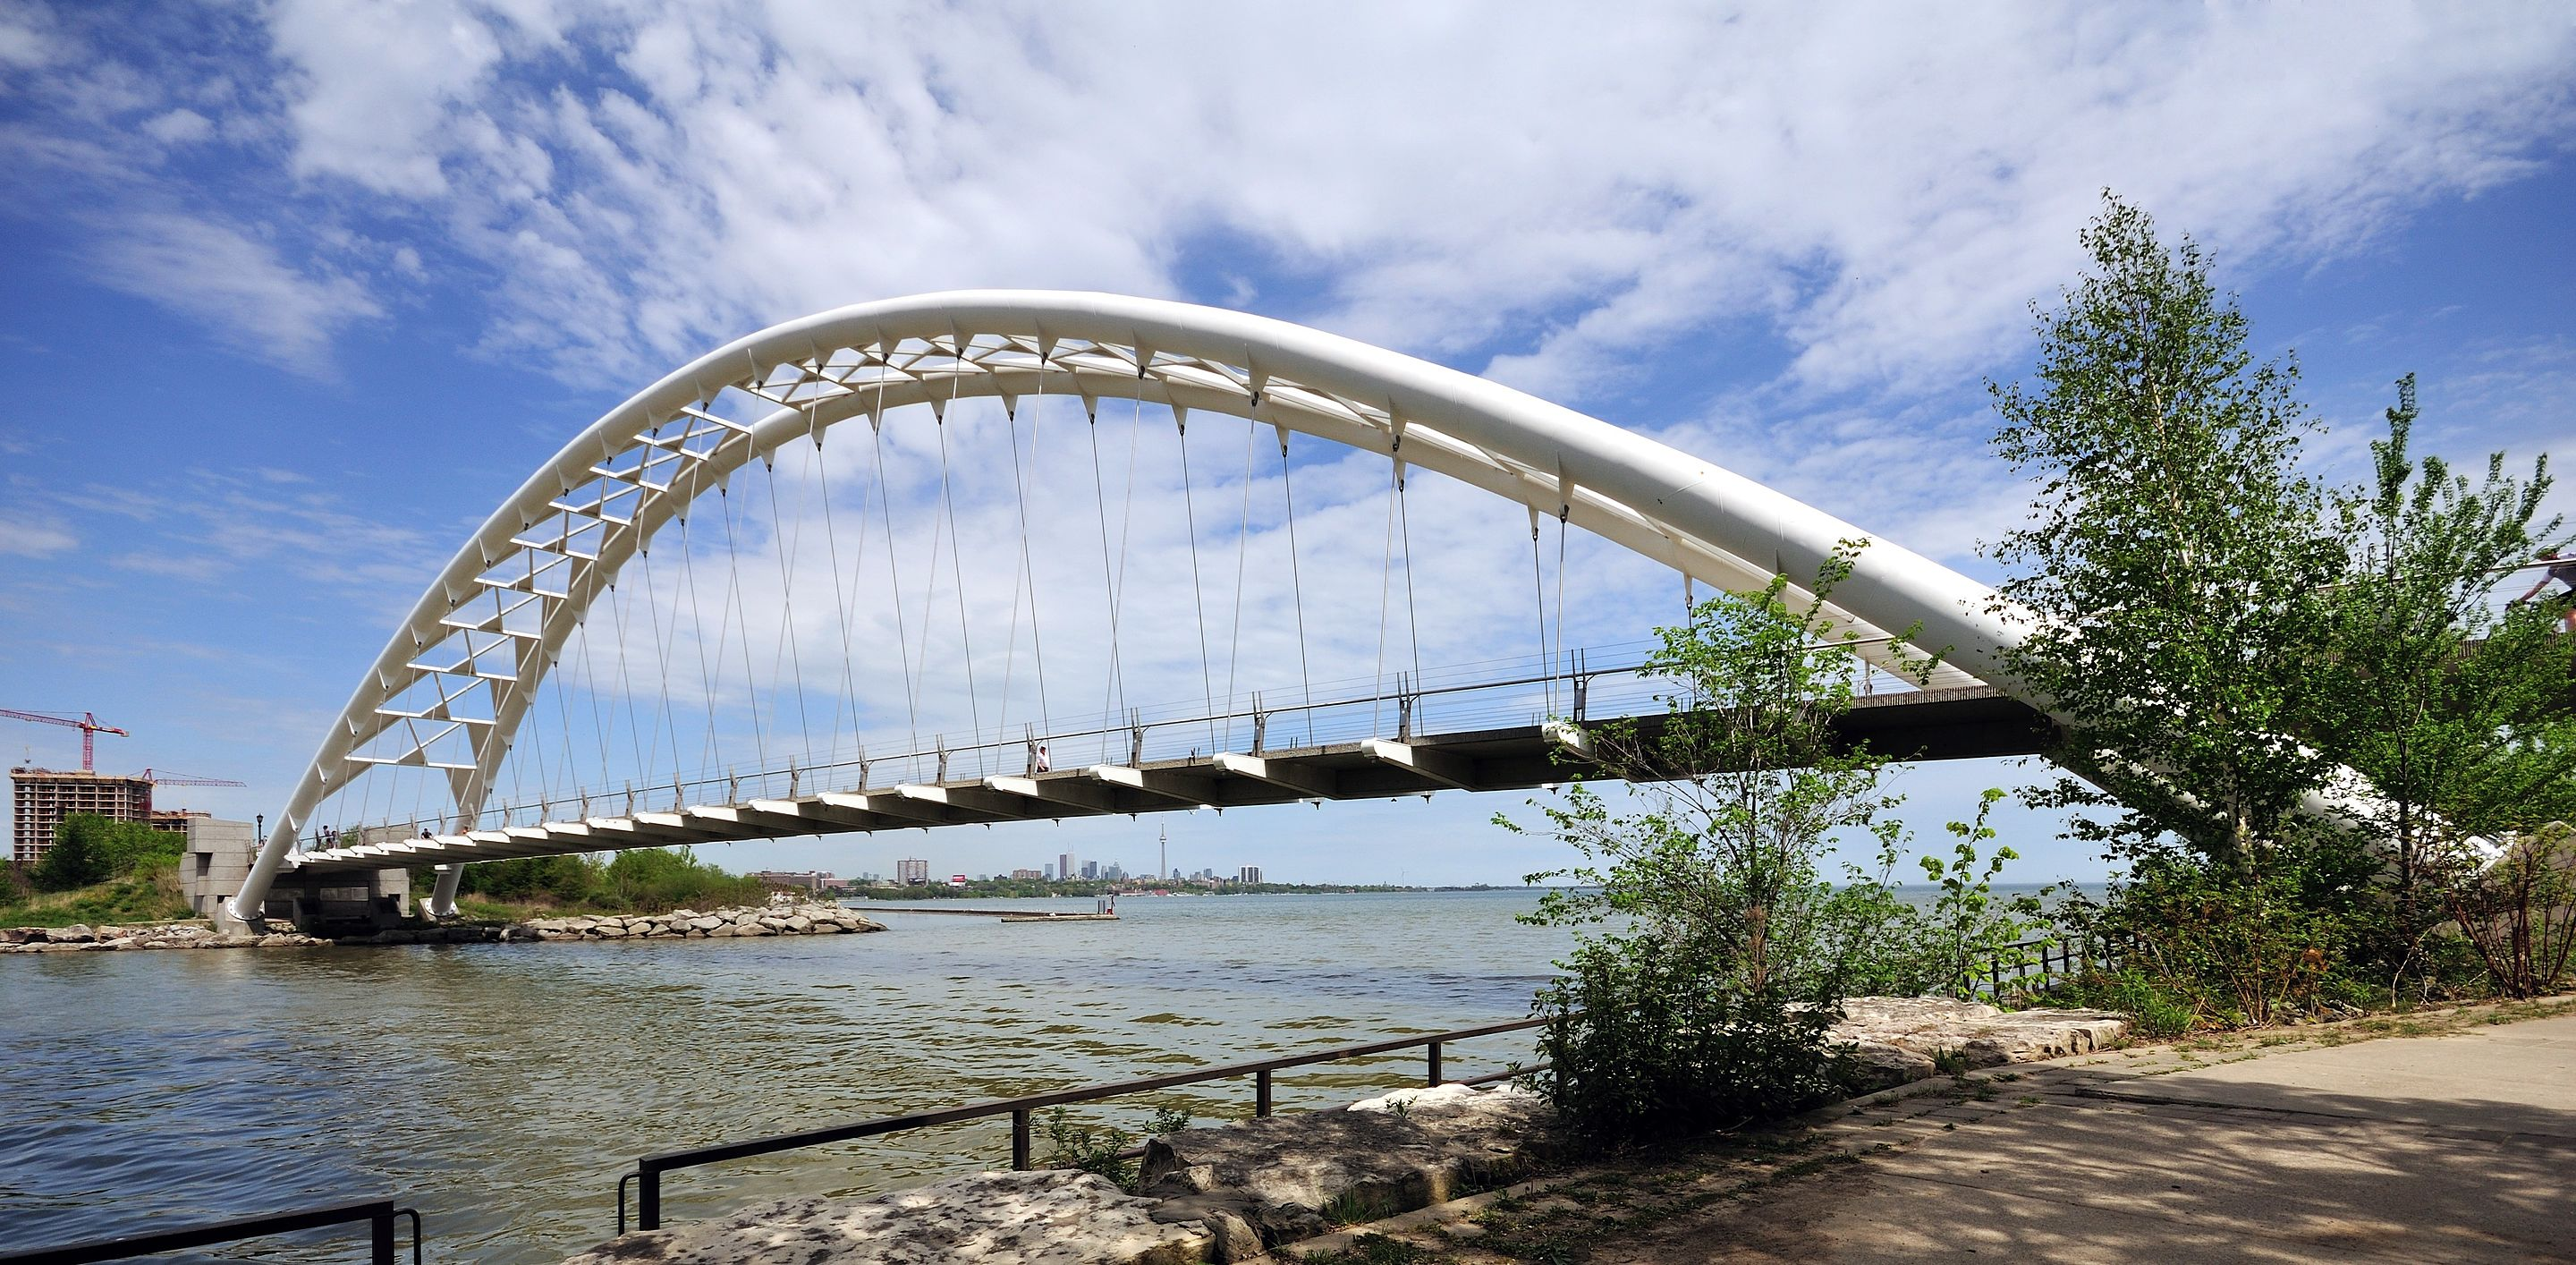 Toronto_-_ON_-_Humber_Bay_und_Humber_Bay_Arch_Bridge